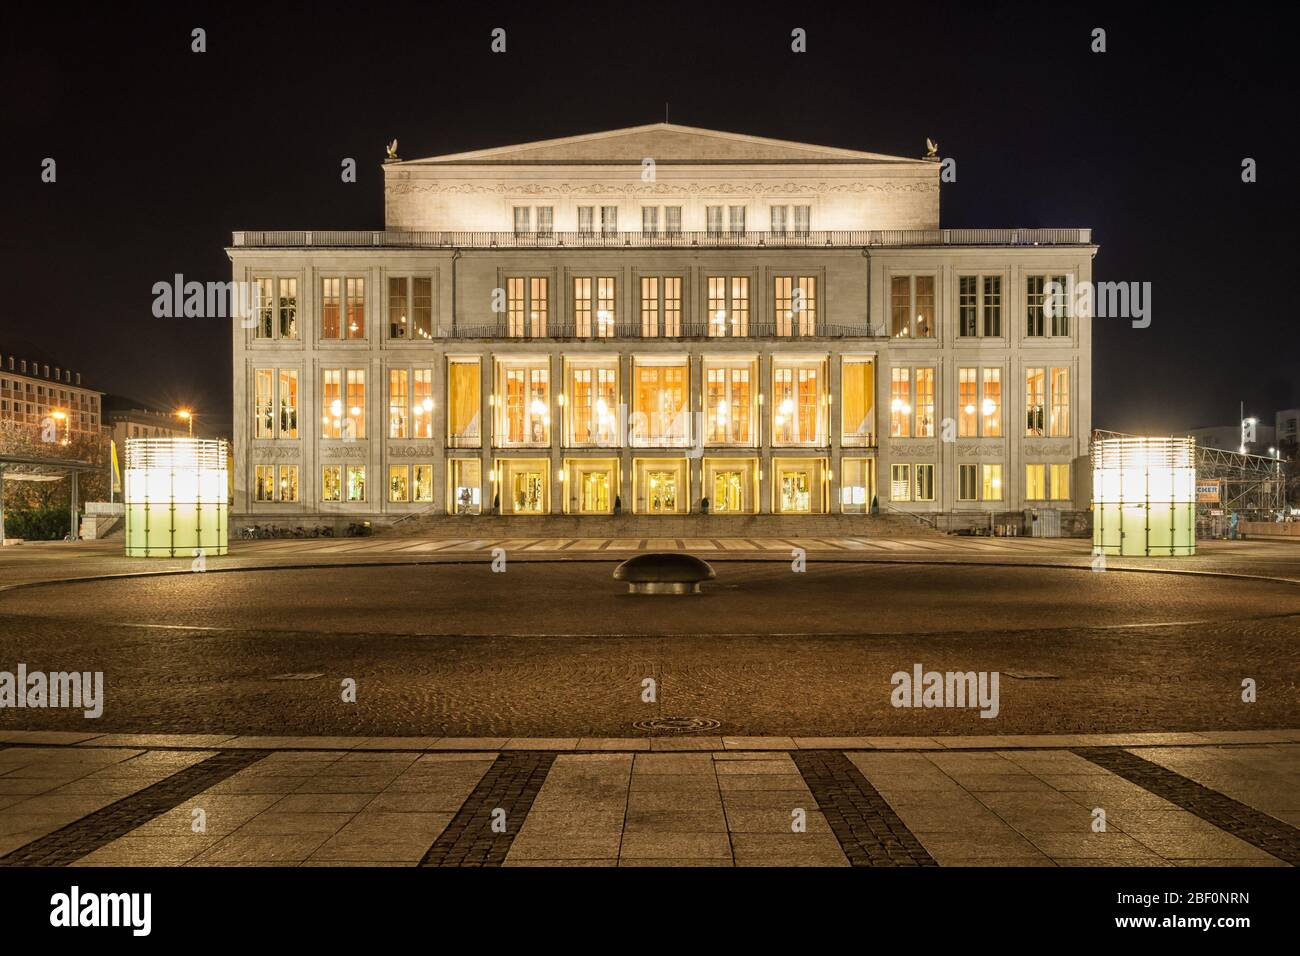 The Opera House In Leipzig At Night Stock Photo Alamy